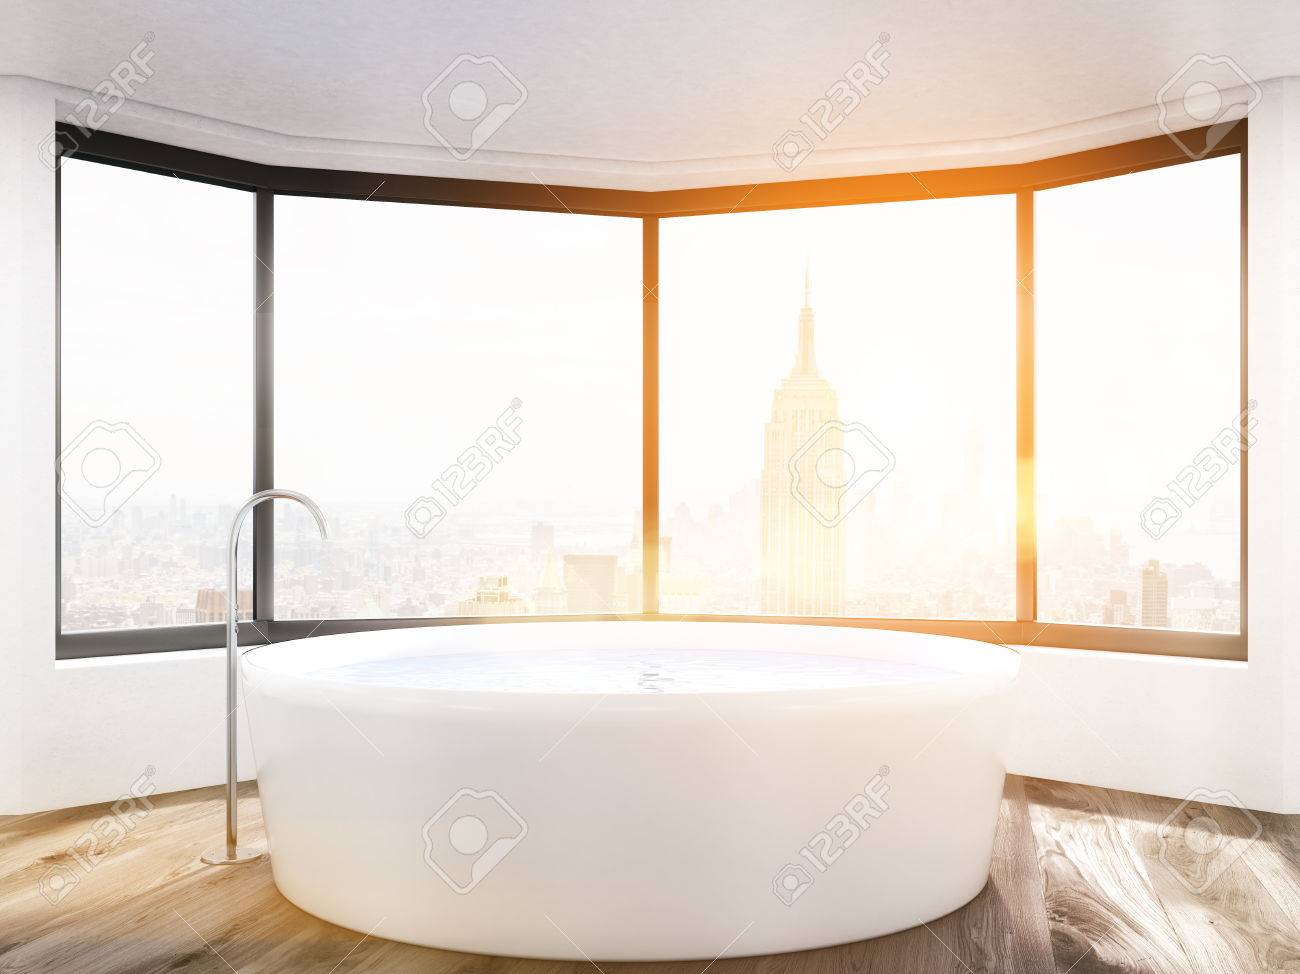 Sunlit Bathroom With Panoramic Window And Round Bath Tub. New ...